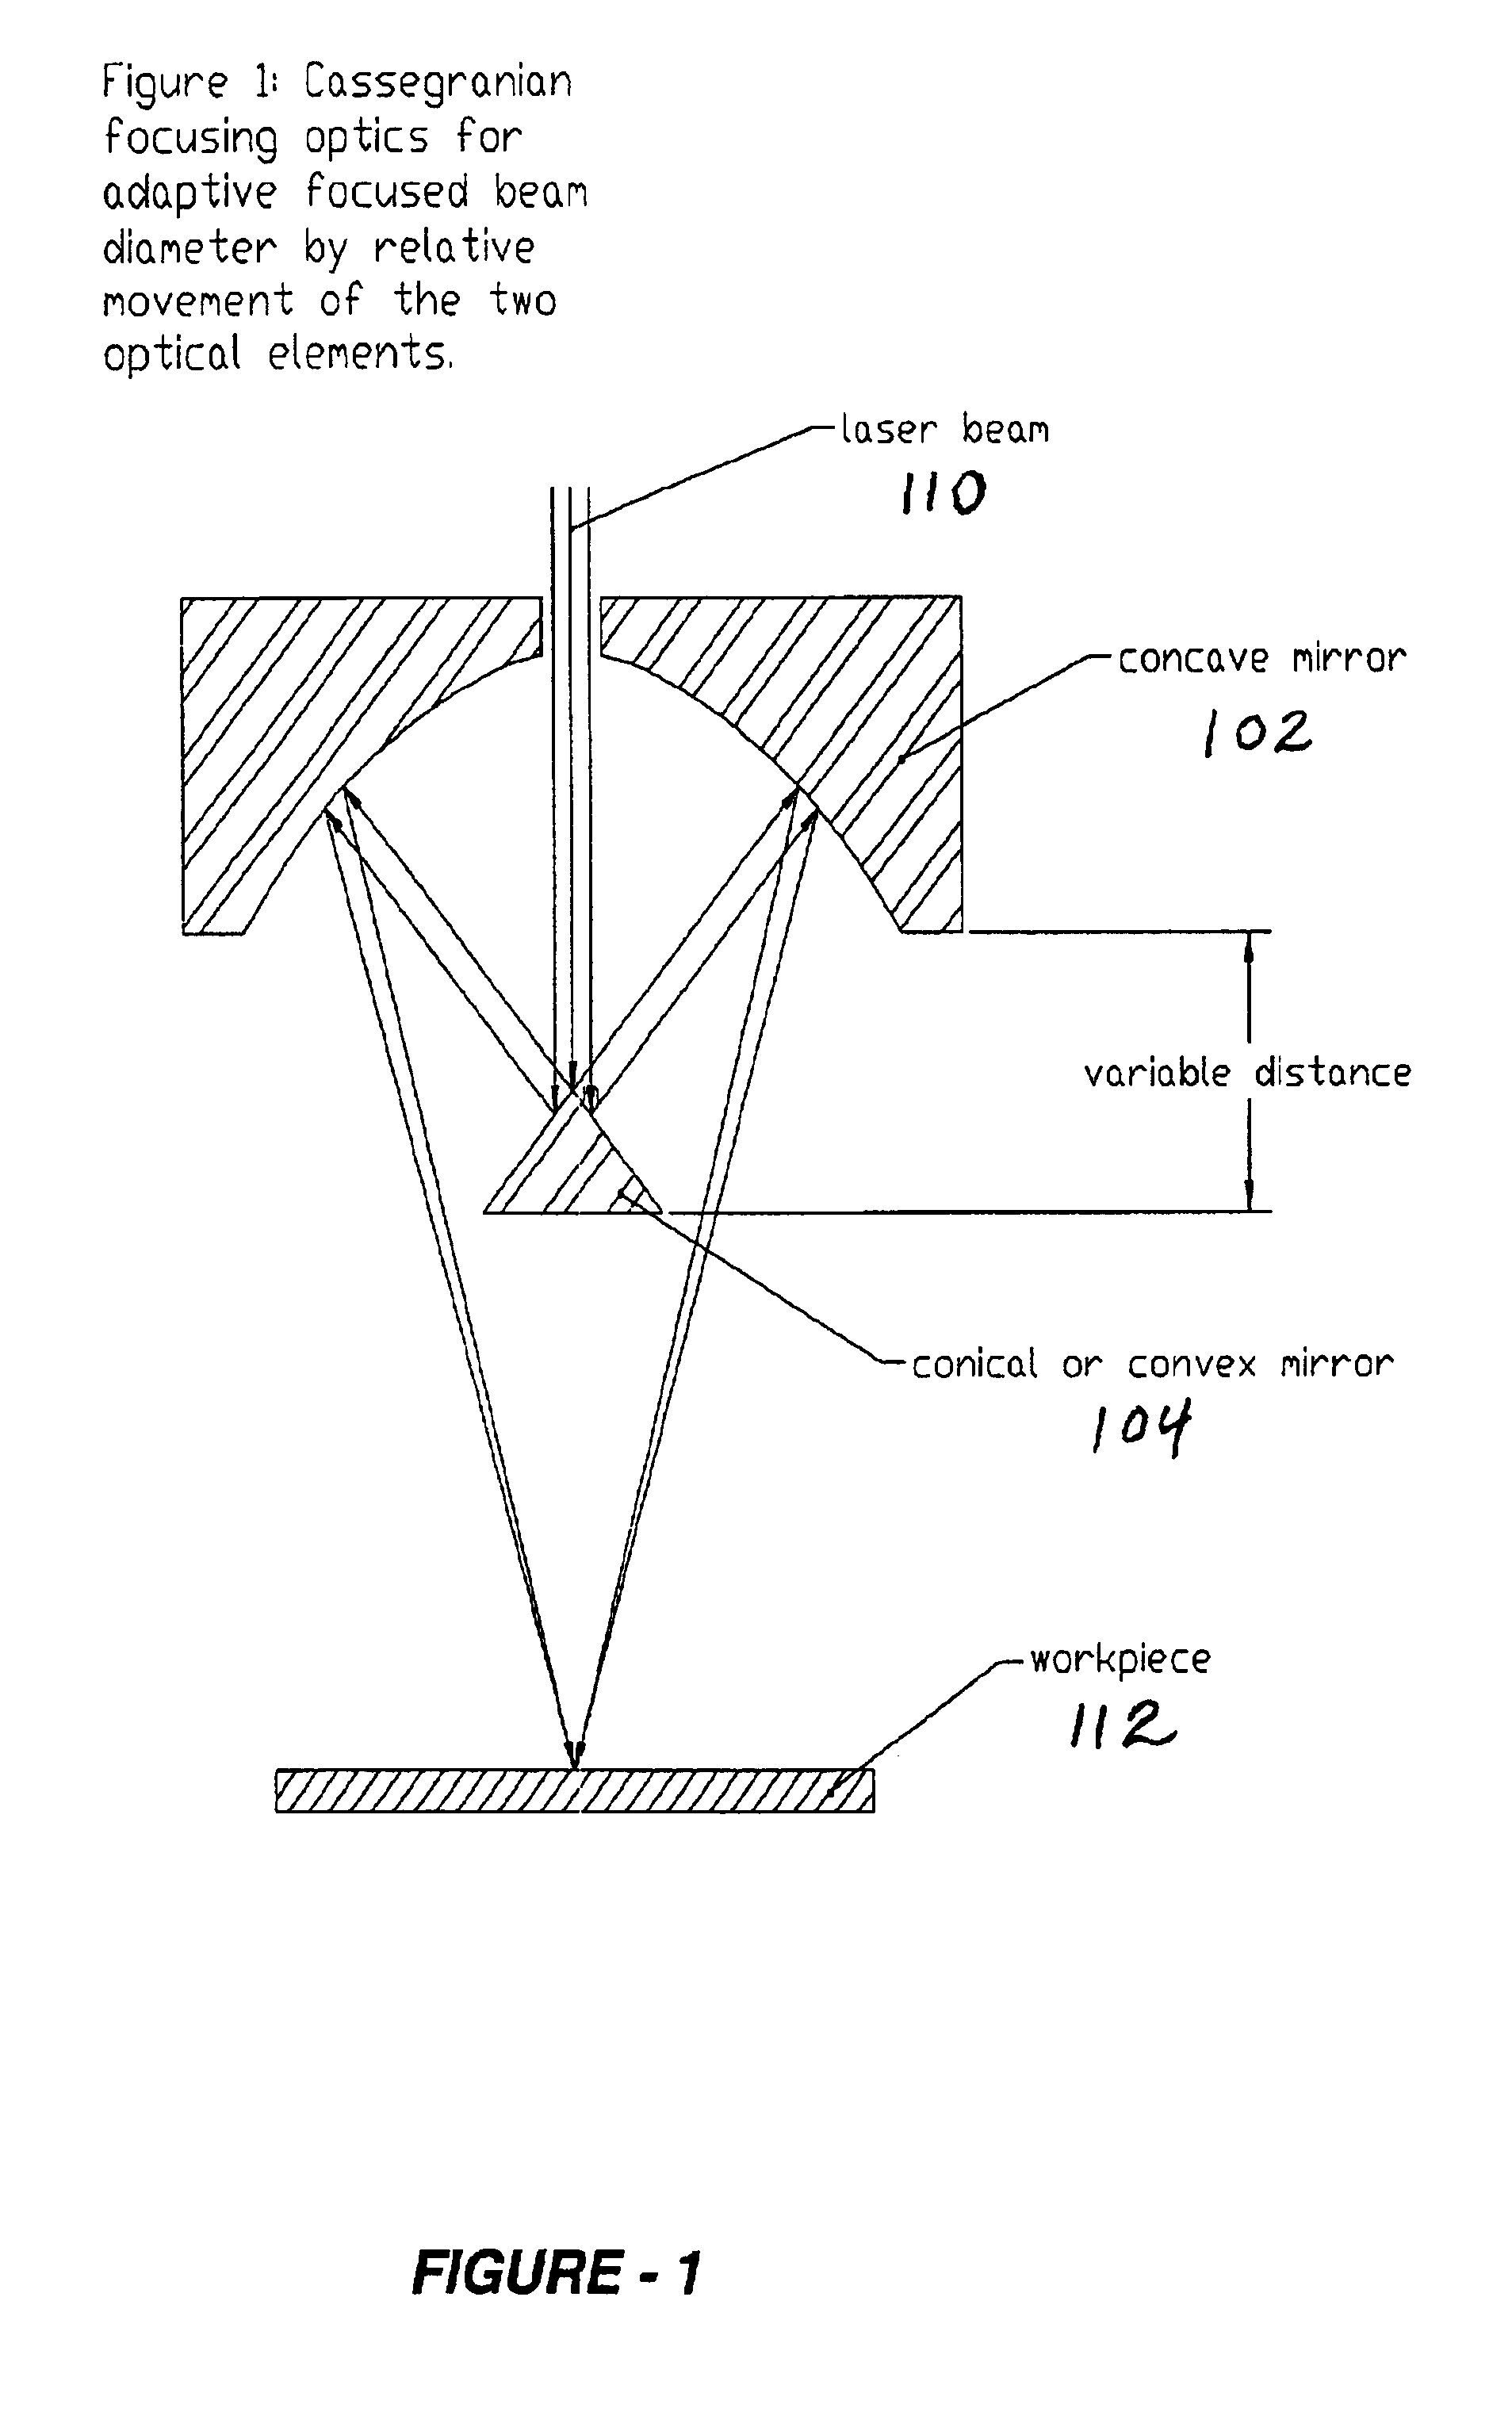 patent us6710280 - focusing optics for adaptive deposition in rapid manufacturing